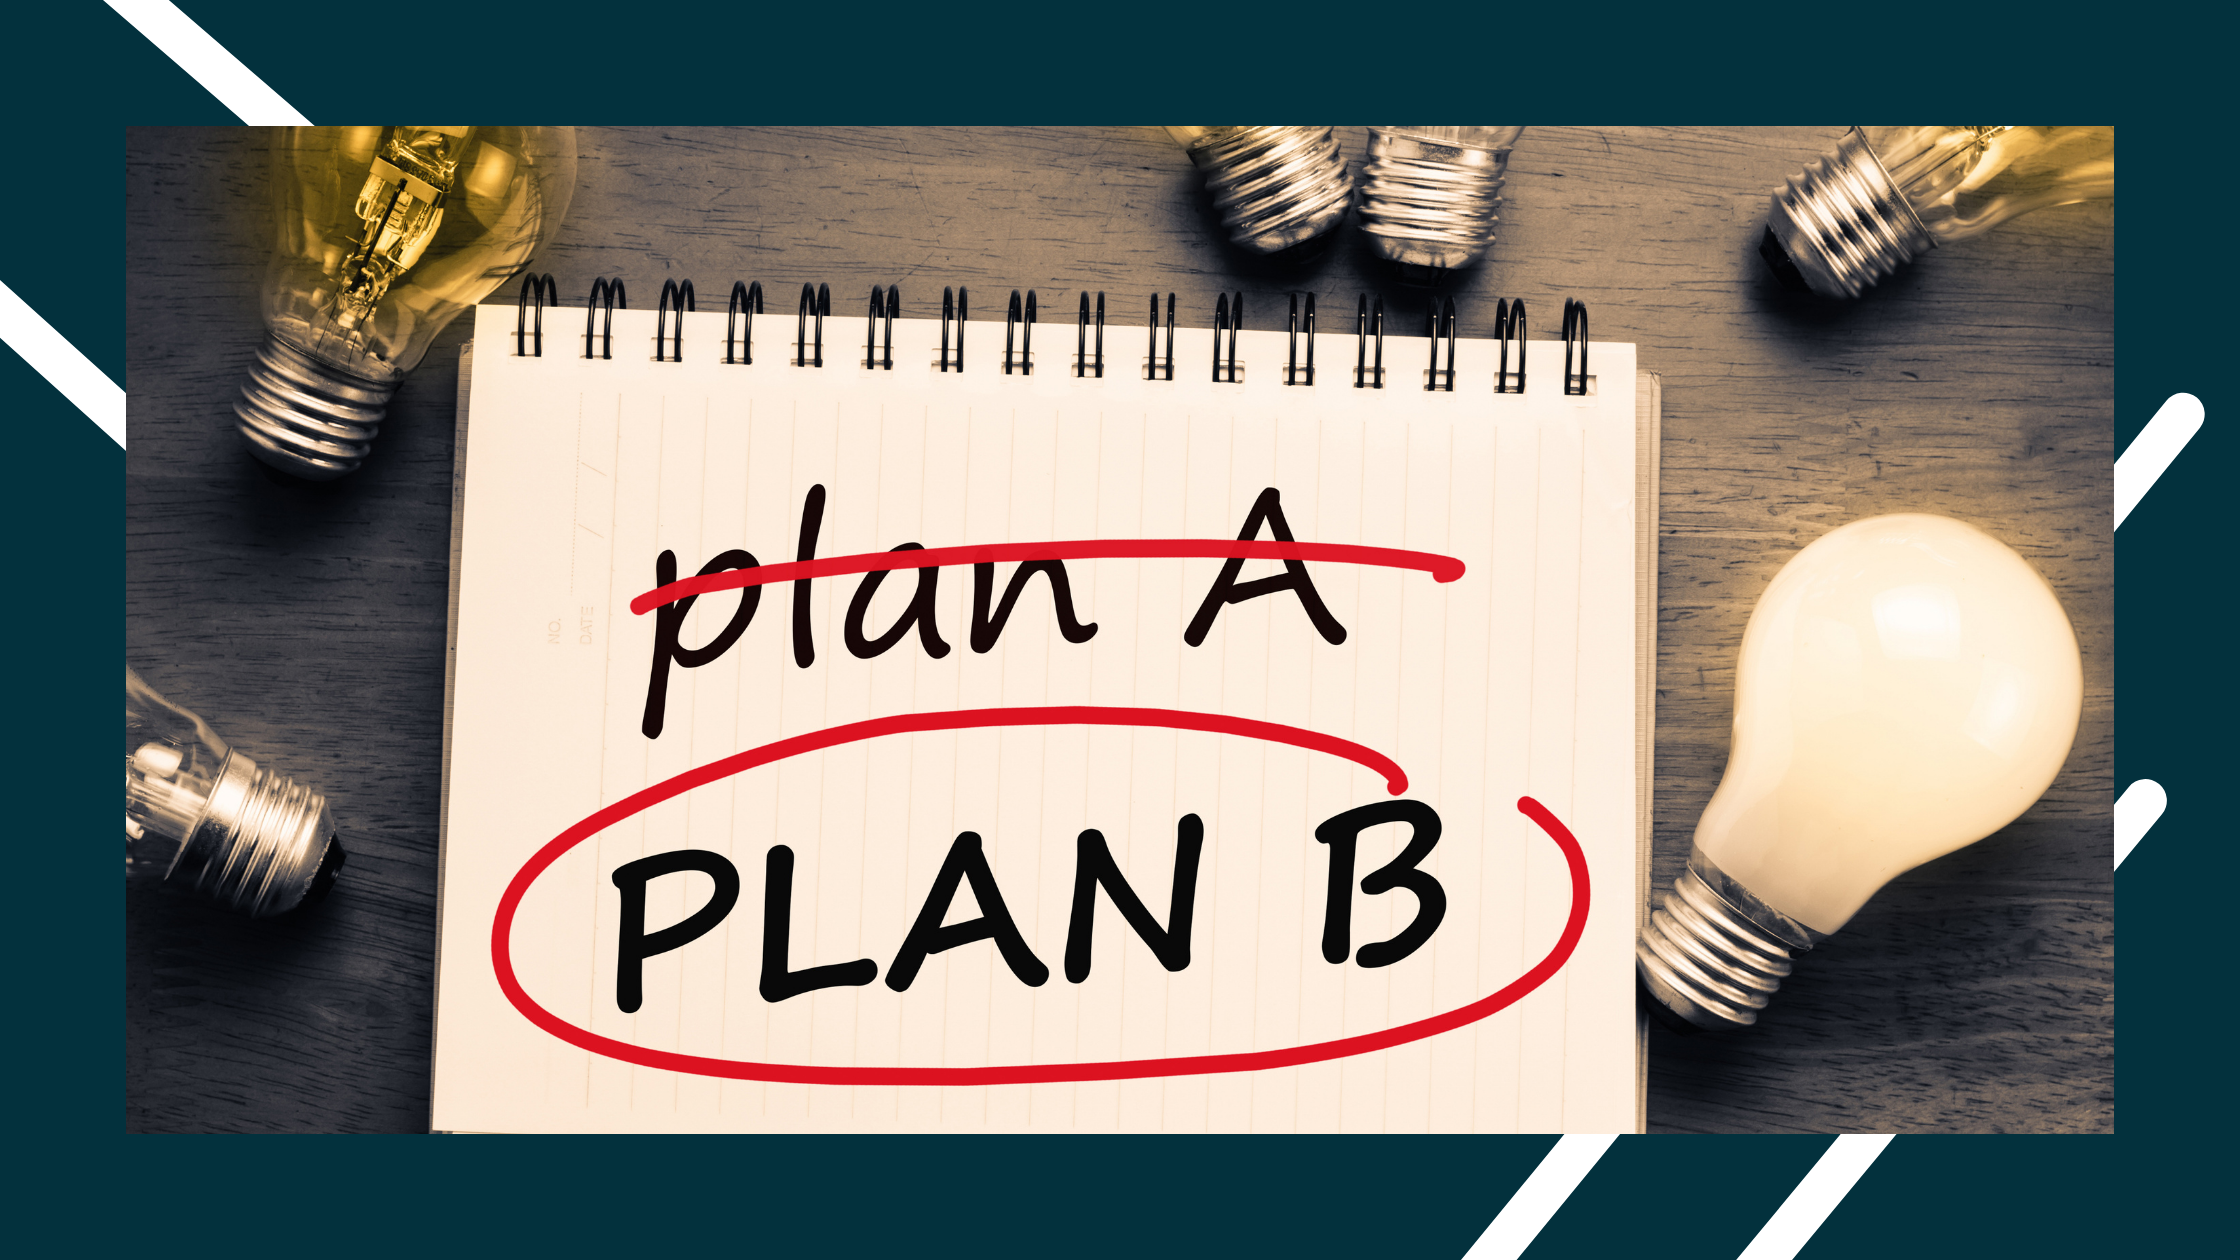 plan a striked out on paper and plan b circled